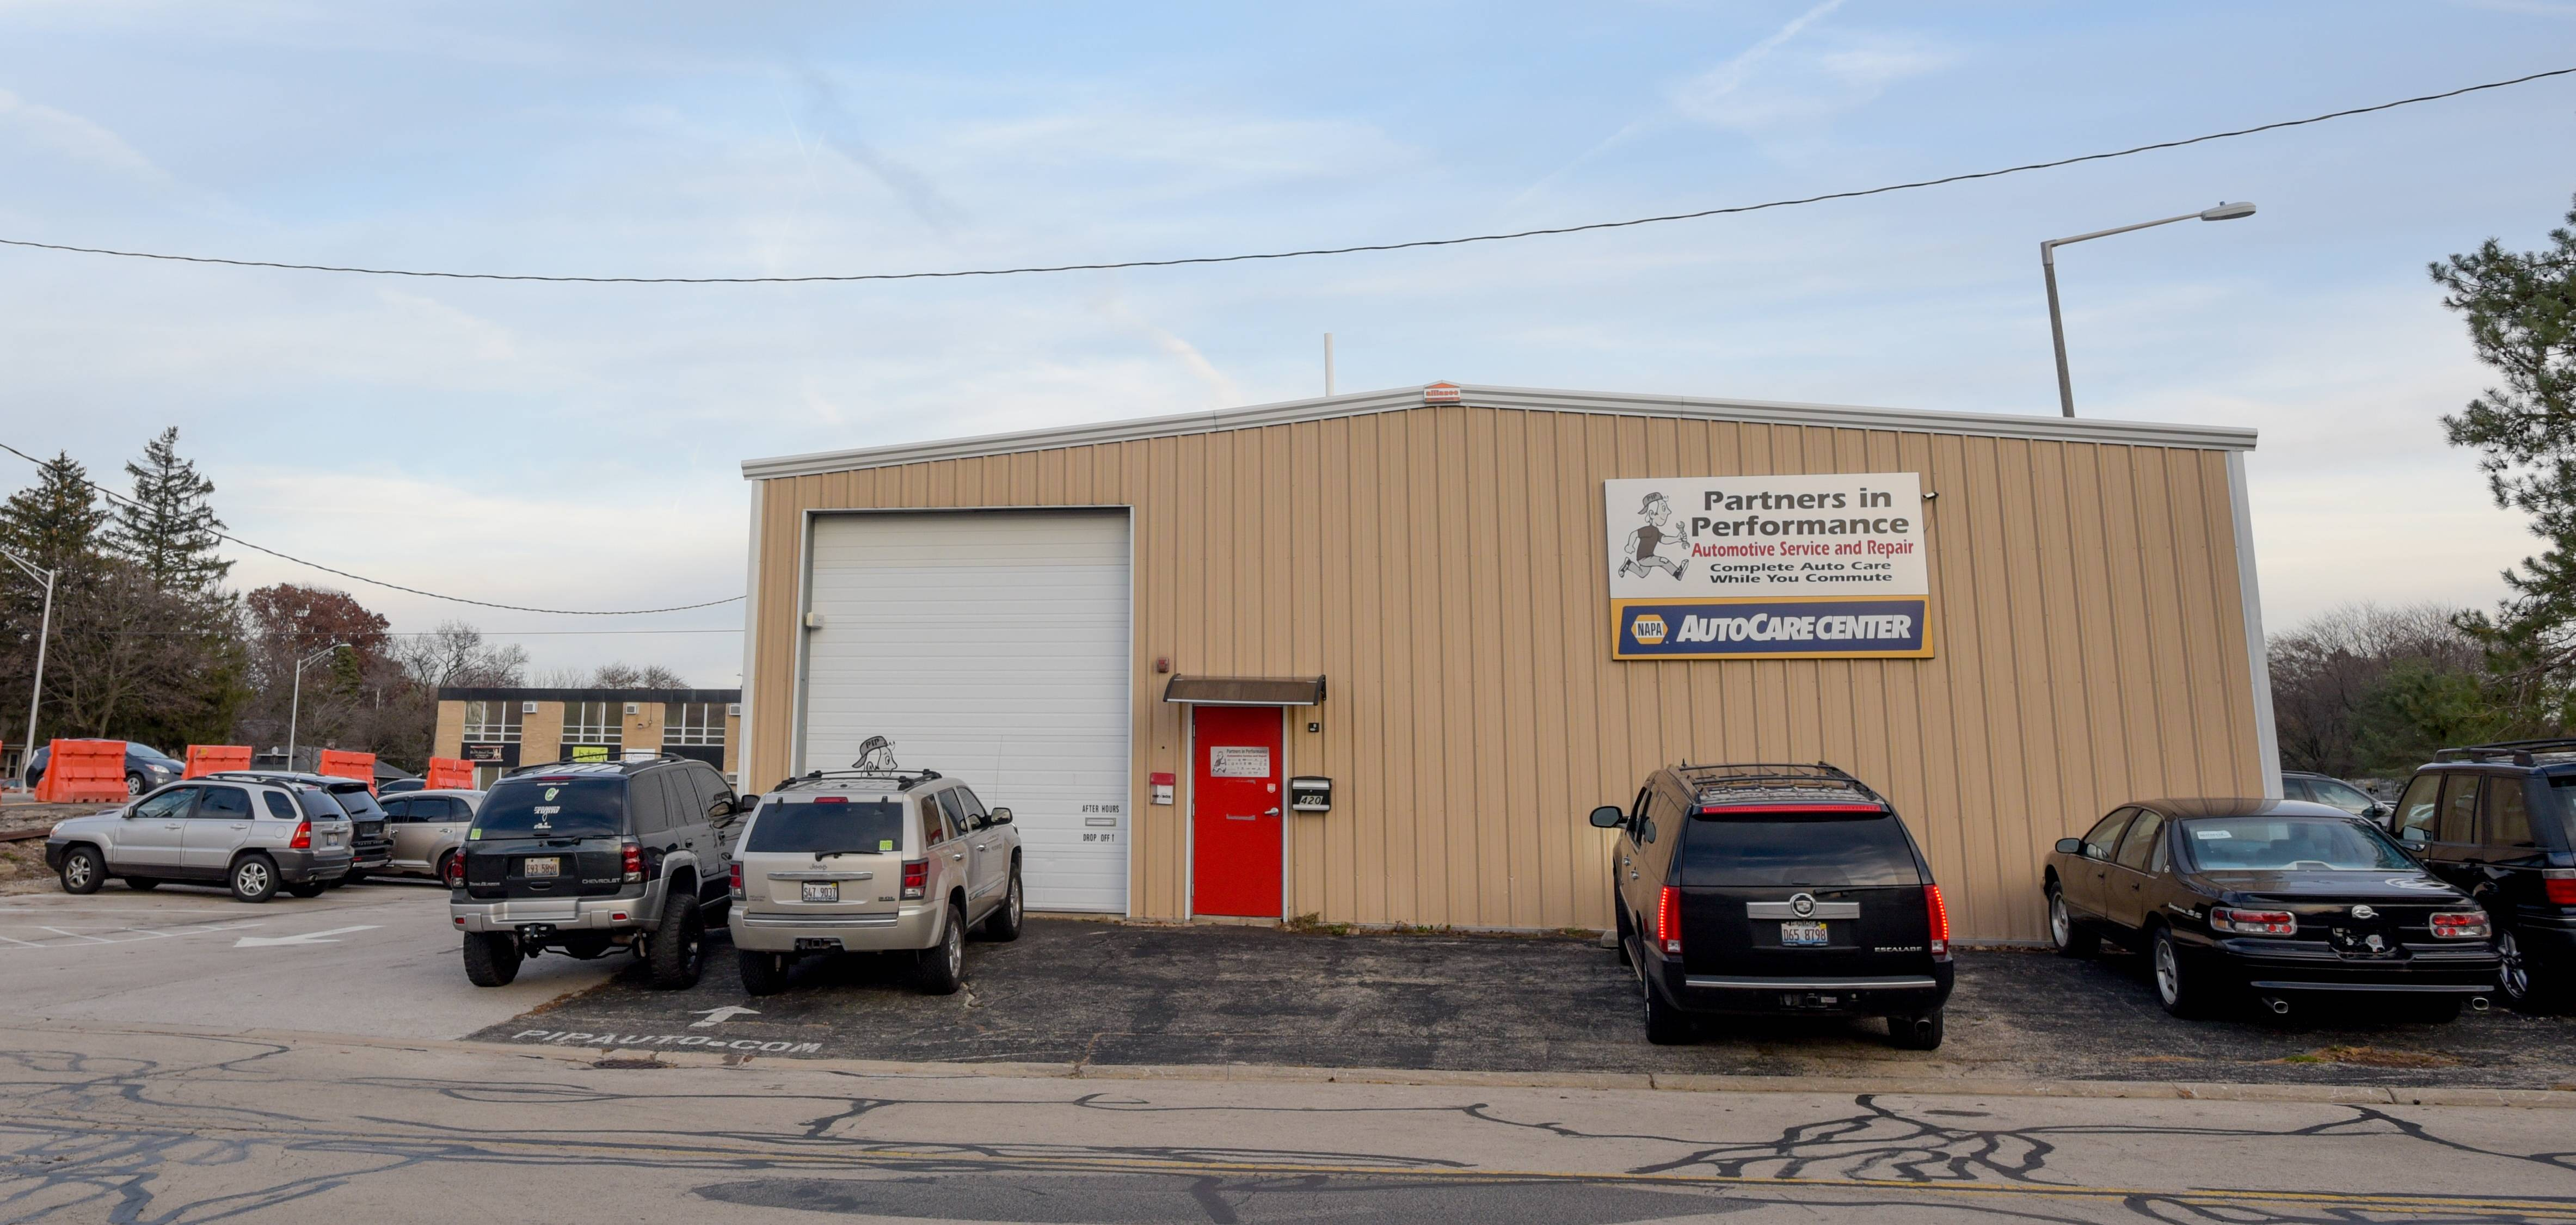 Partners in Performance Automotive Service and Repair can remain at 420 N. Center St. in the 5th Avenue redevelopment area in Naperville for another six months under a lease extension approved by the city.